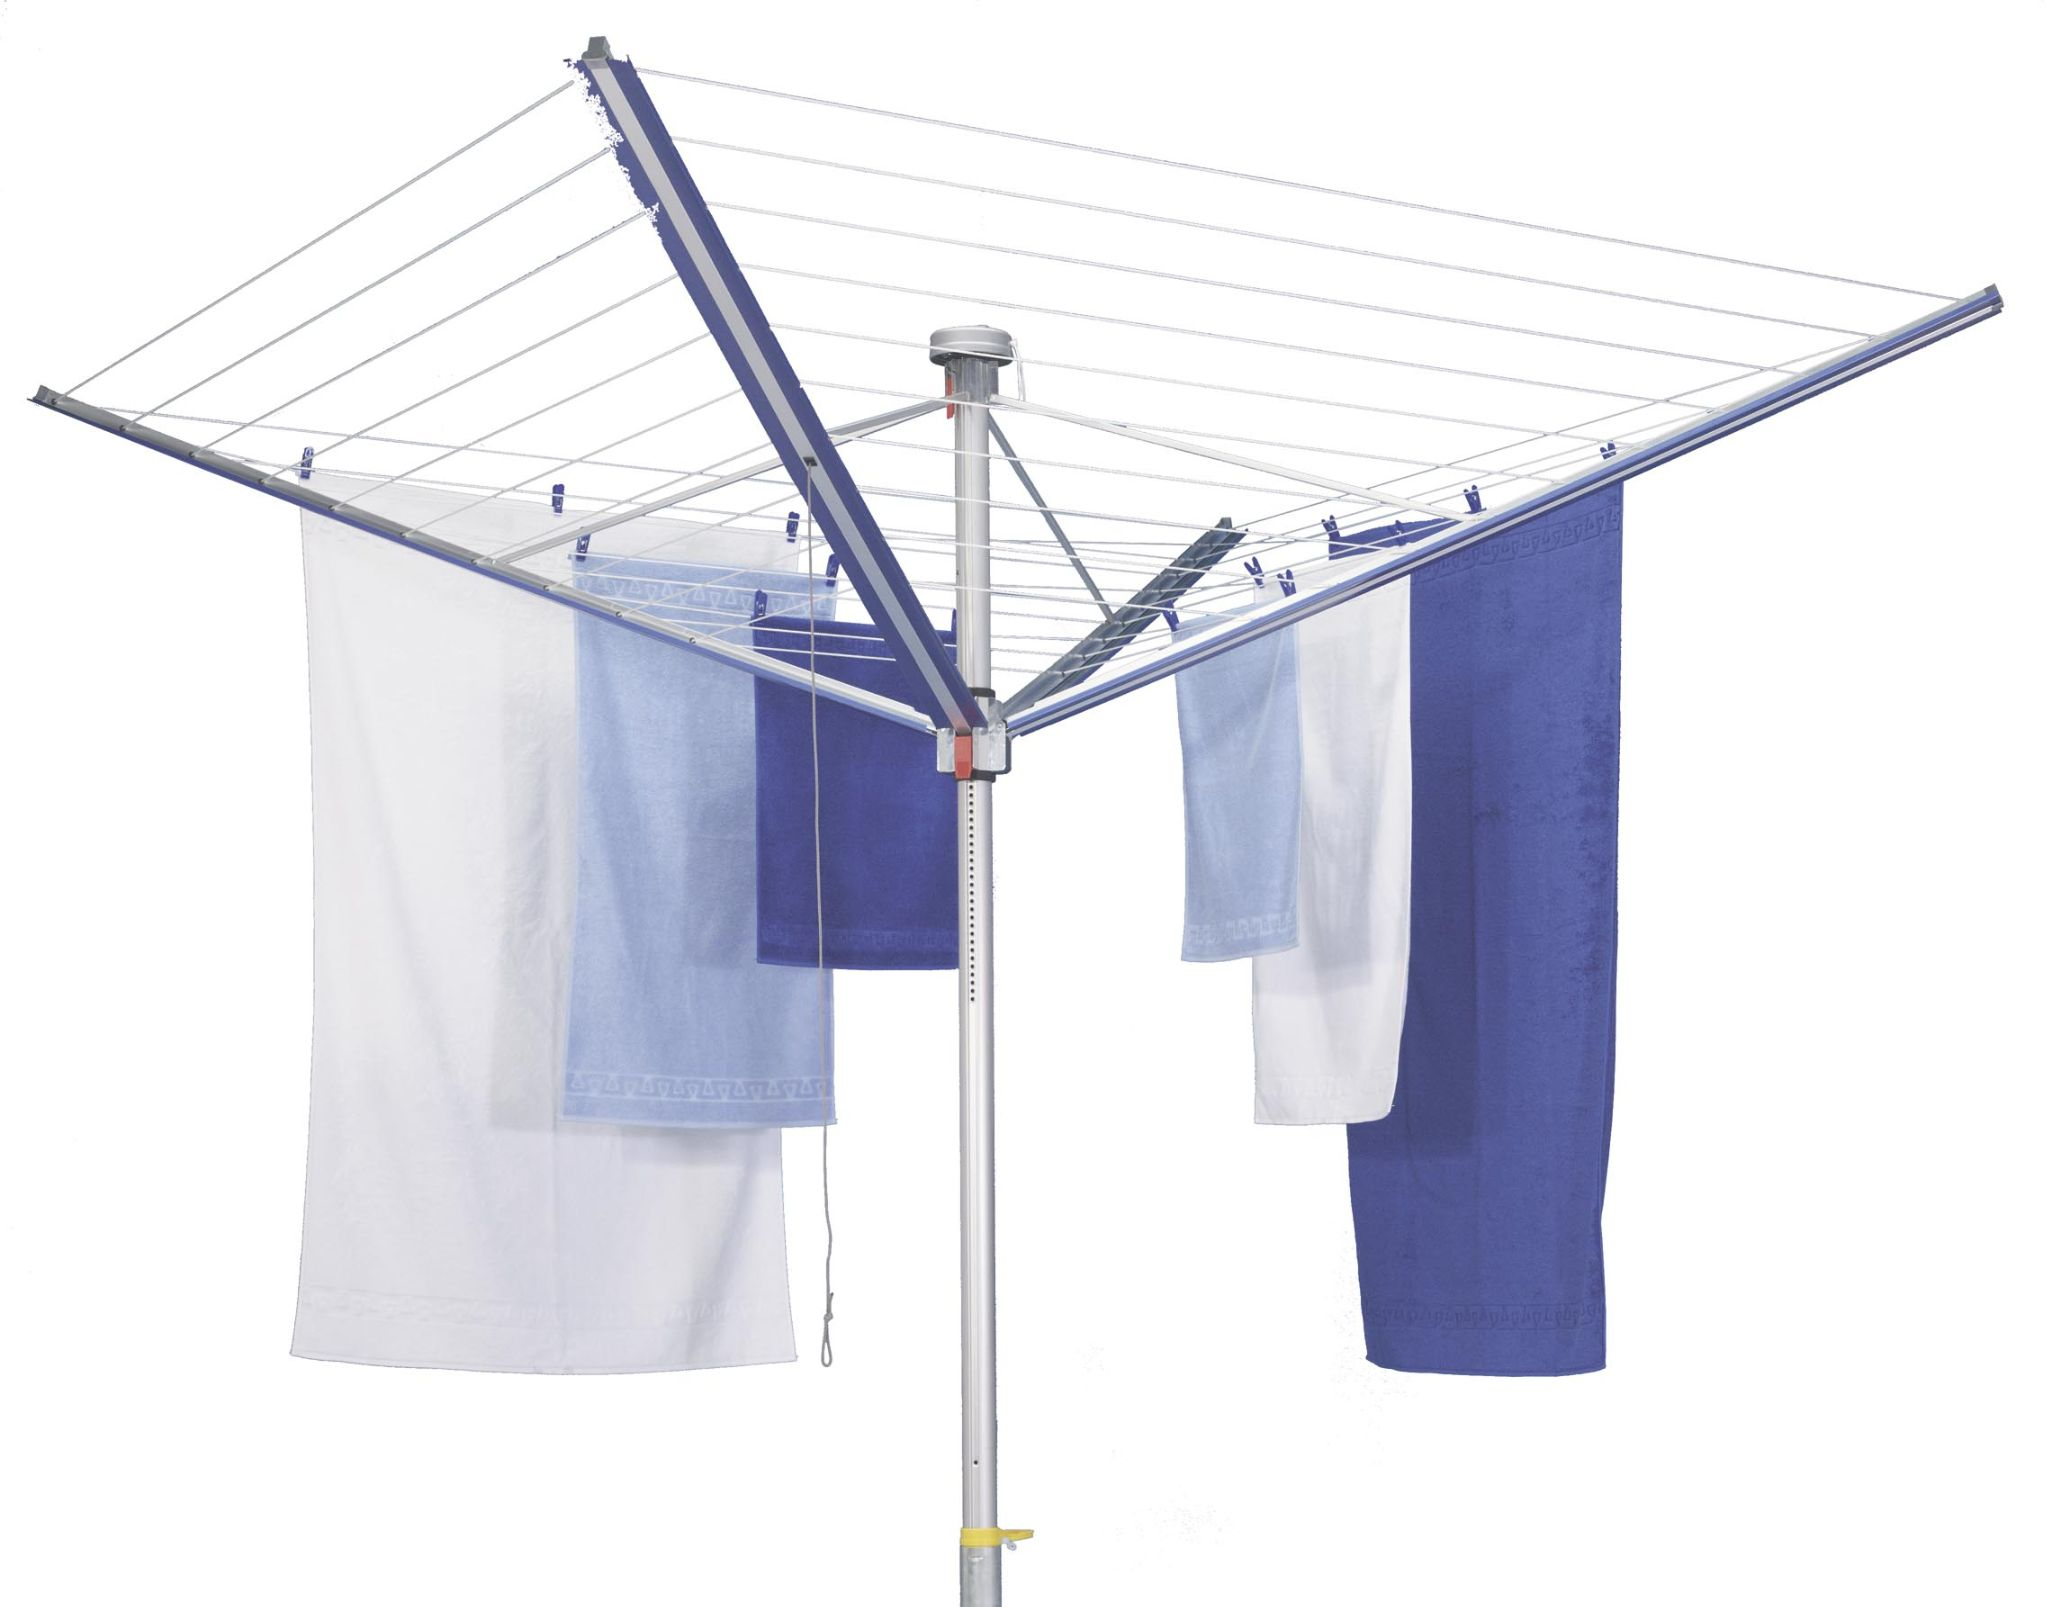 Stewi First Lady Rotary Clothes Dryer - Swiss Made!